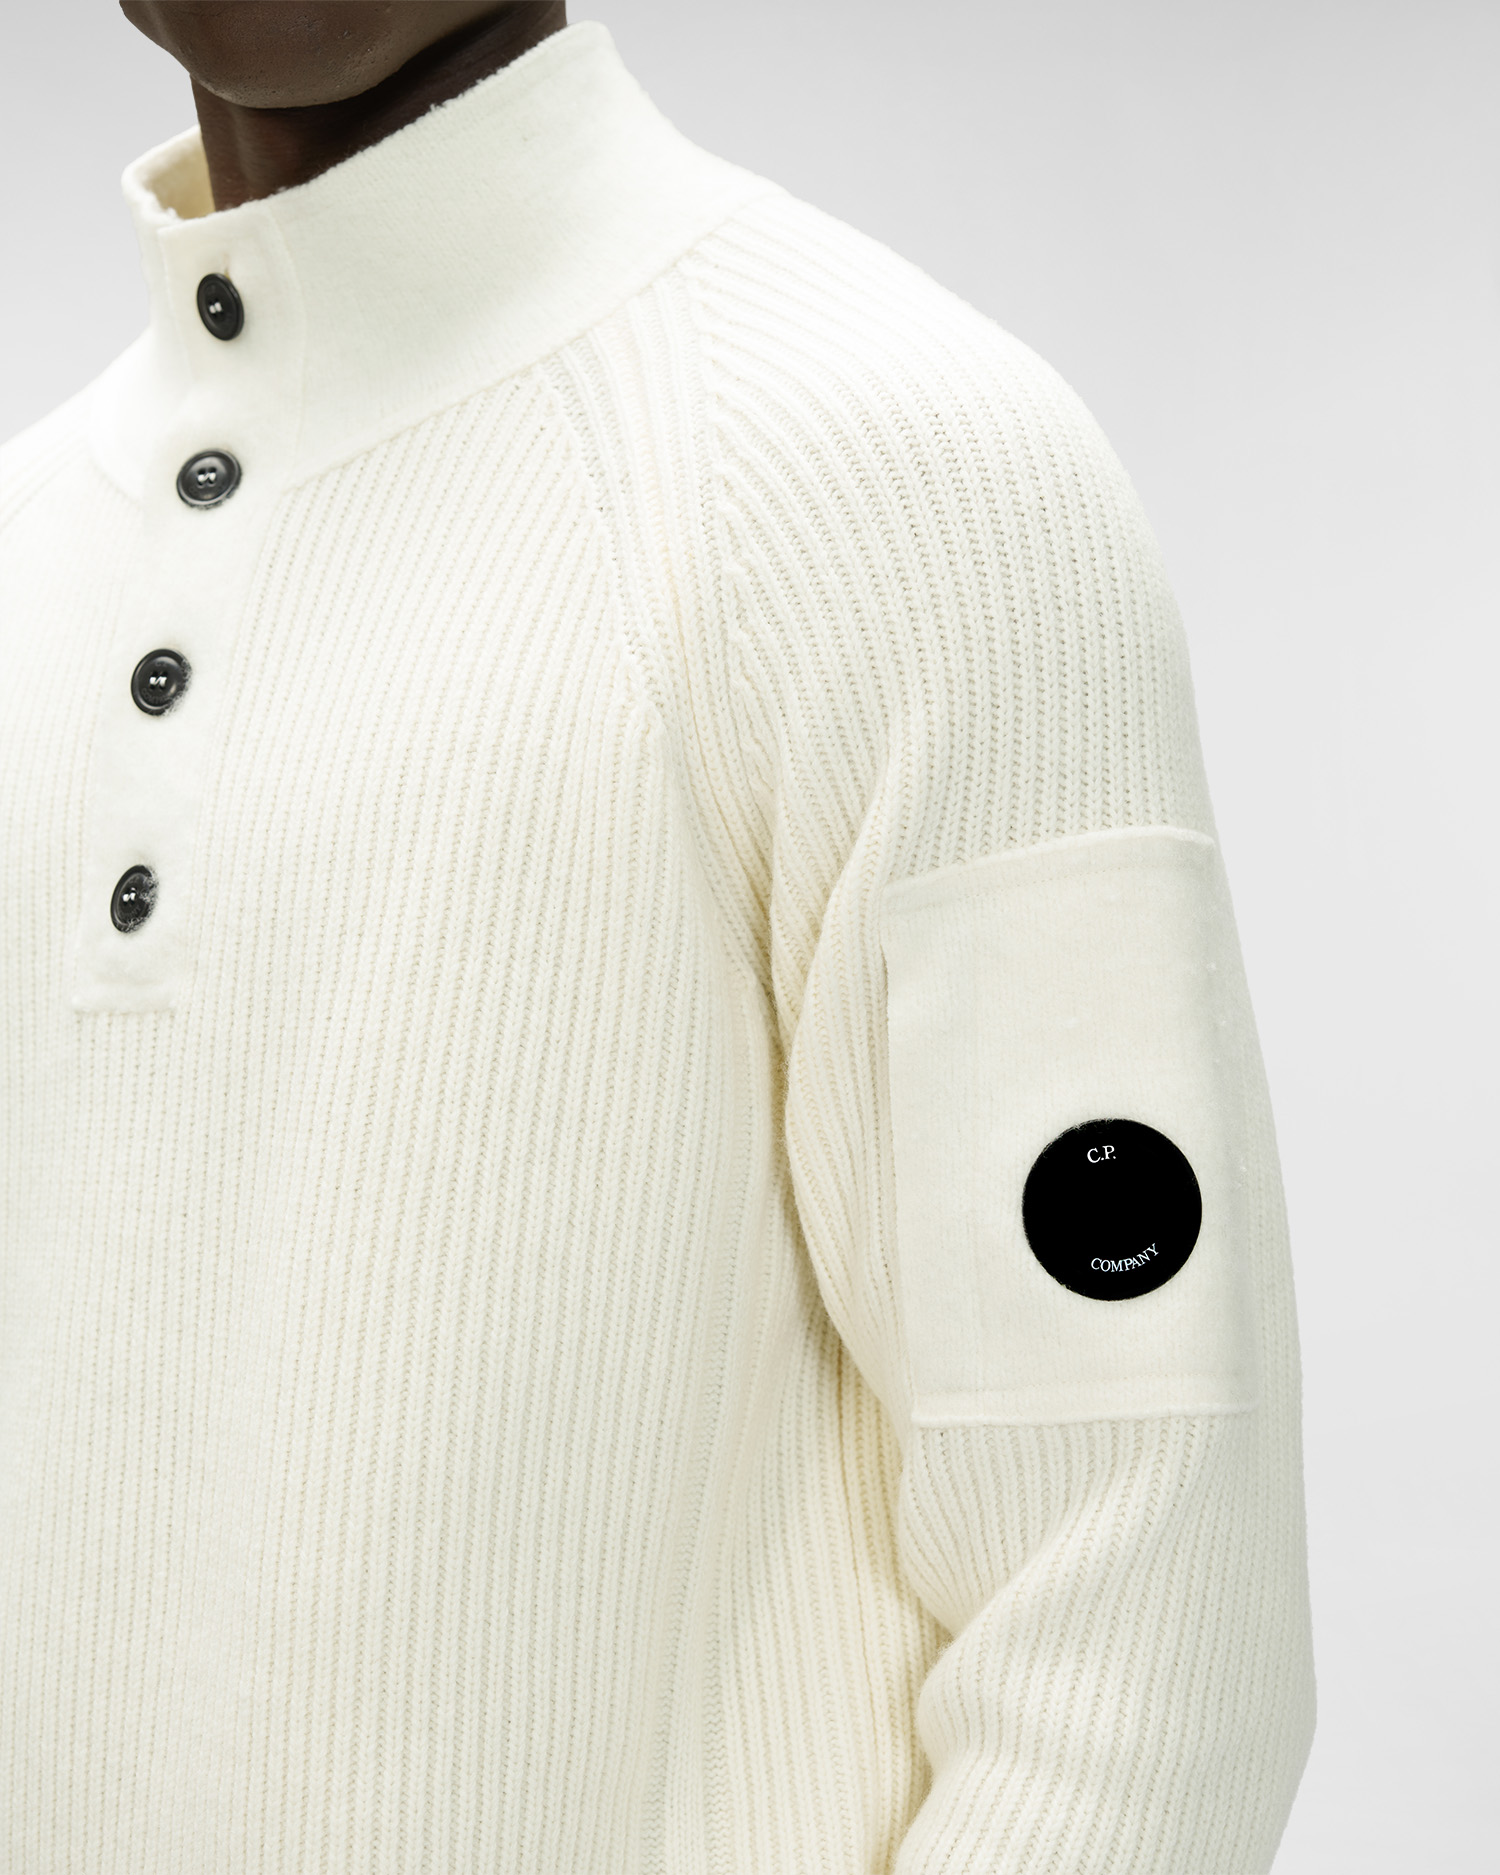 Lambswool Stand Collar Knit C.P. COMPANY